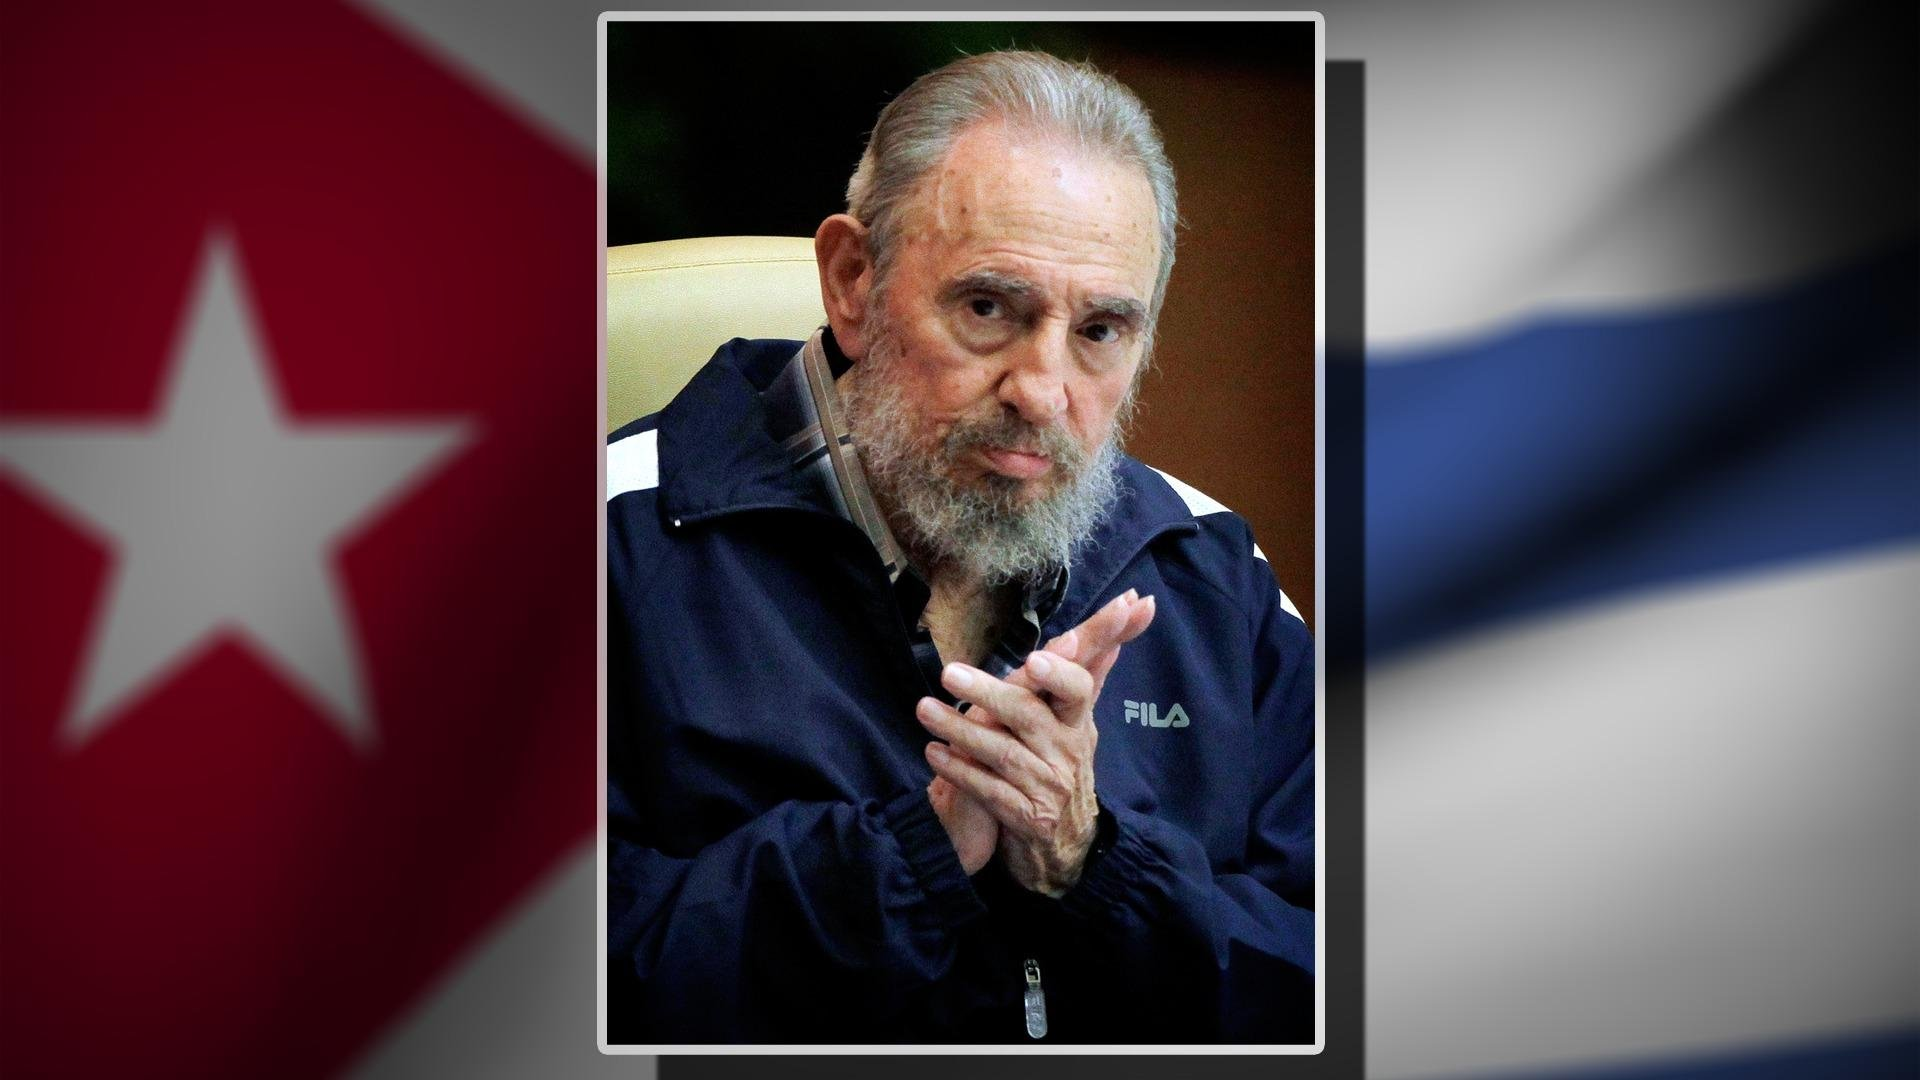 Fidel Castro headshot, former Cuba President at 6th Communist Party Congress, Havana, Cuba, on flag texture, partial graphic